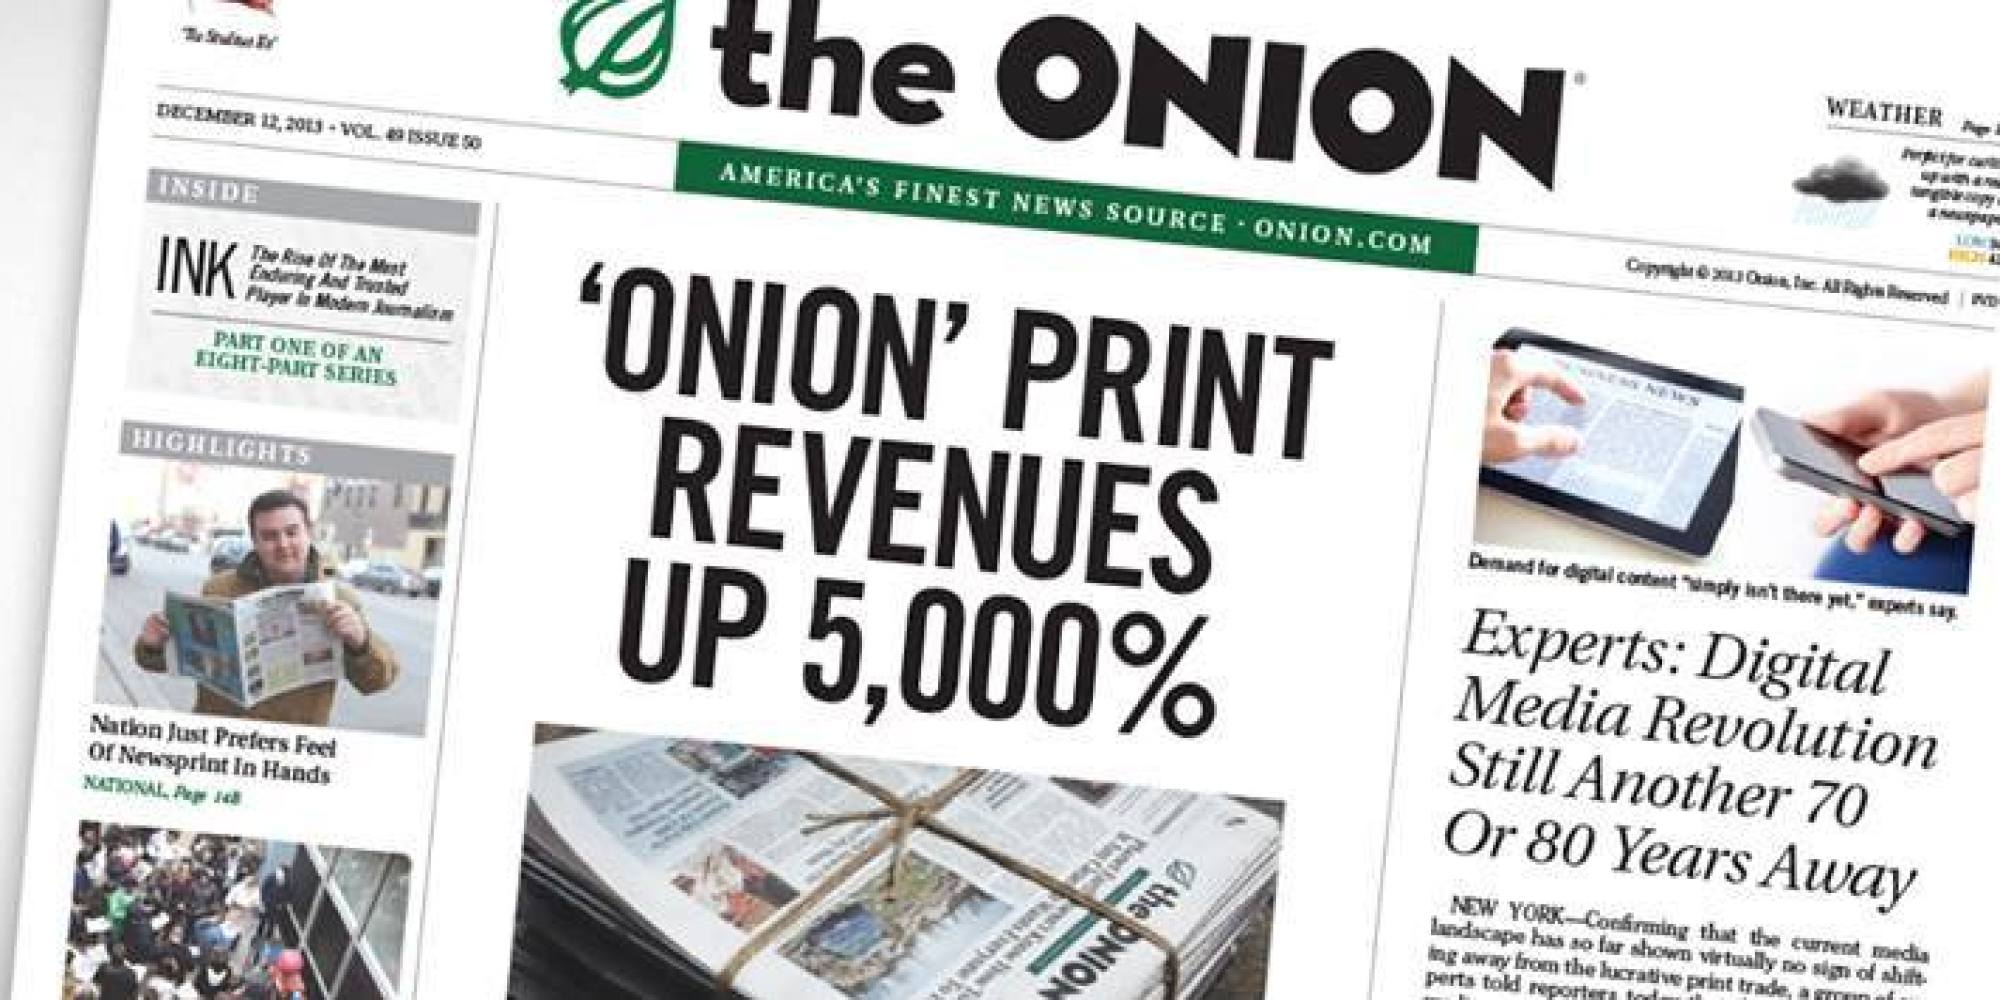 o-THE-ONION-facebook